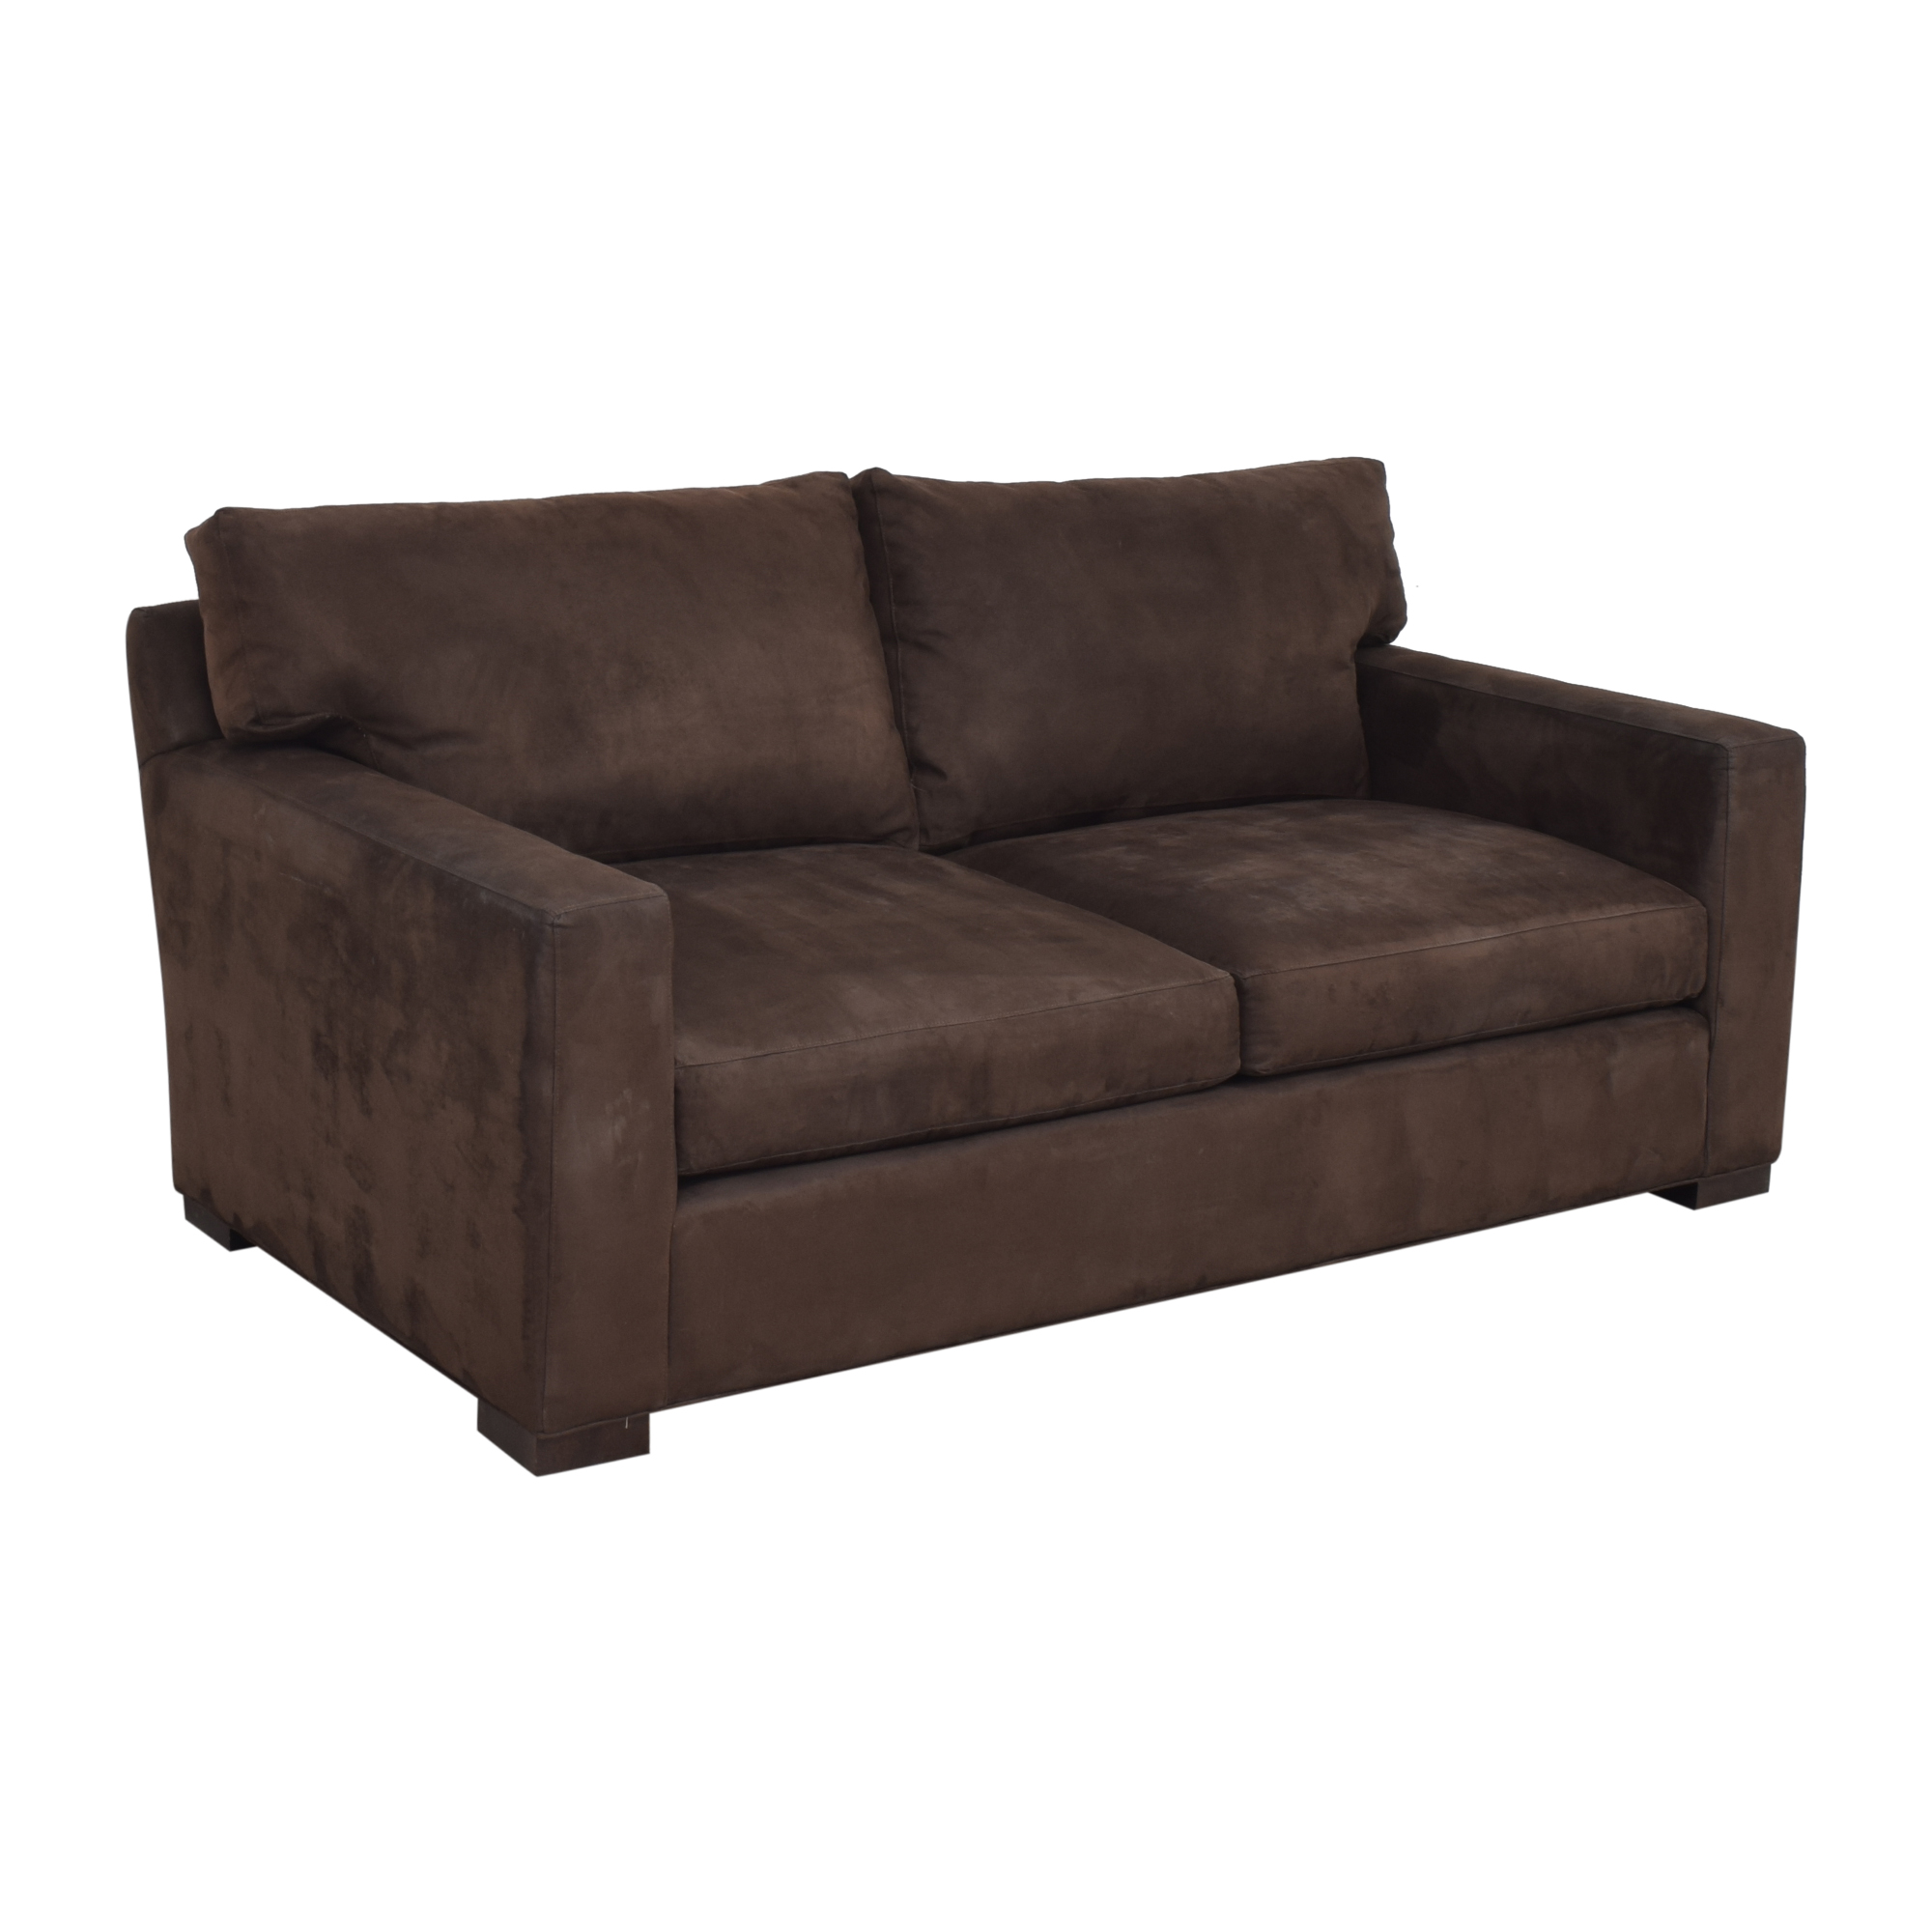 Crate & Barrel Crate and Barrel Axis II Sofa on sale